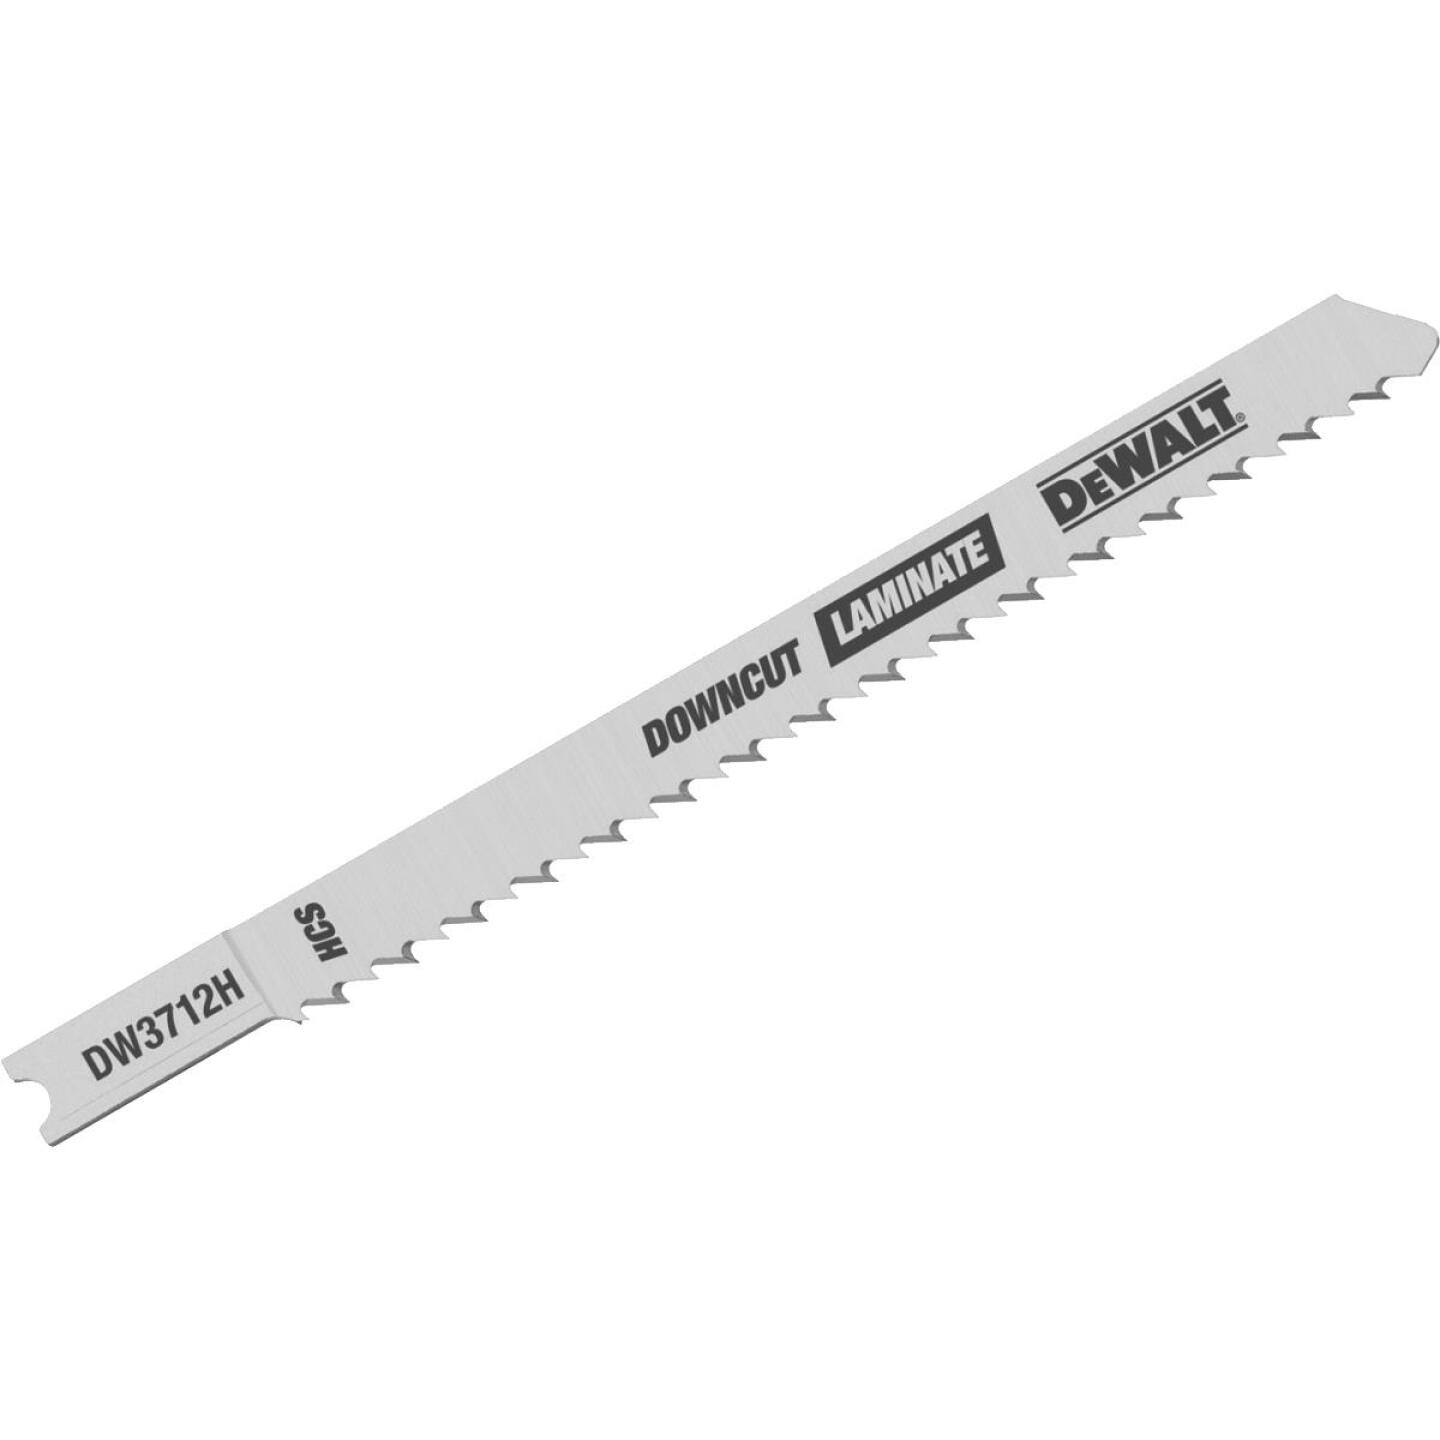 DeWalt U-Shank 4 In. x 10 TPI High Carbon Steel Jig Saw Blade, Downcut Laminate (5-Pack) Image 1